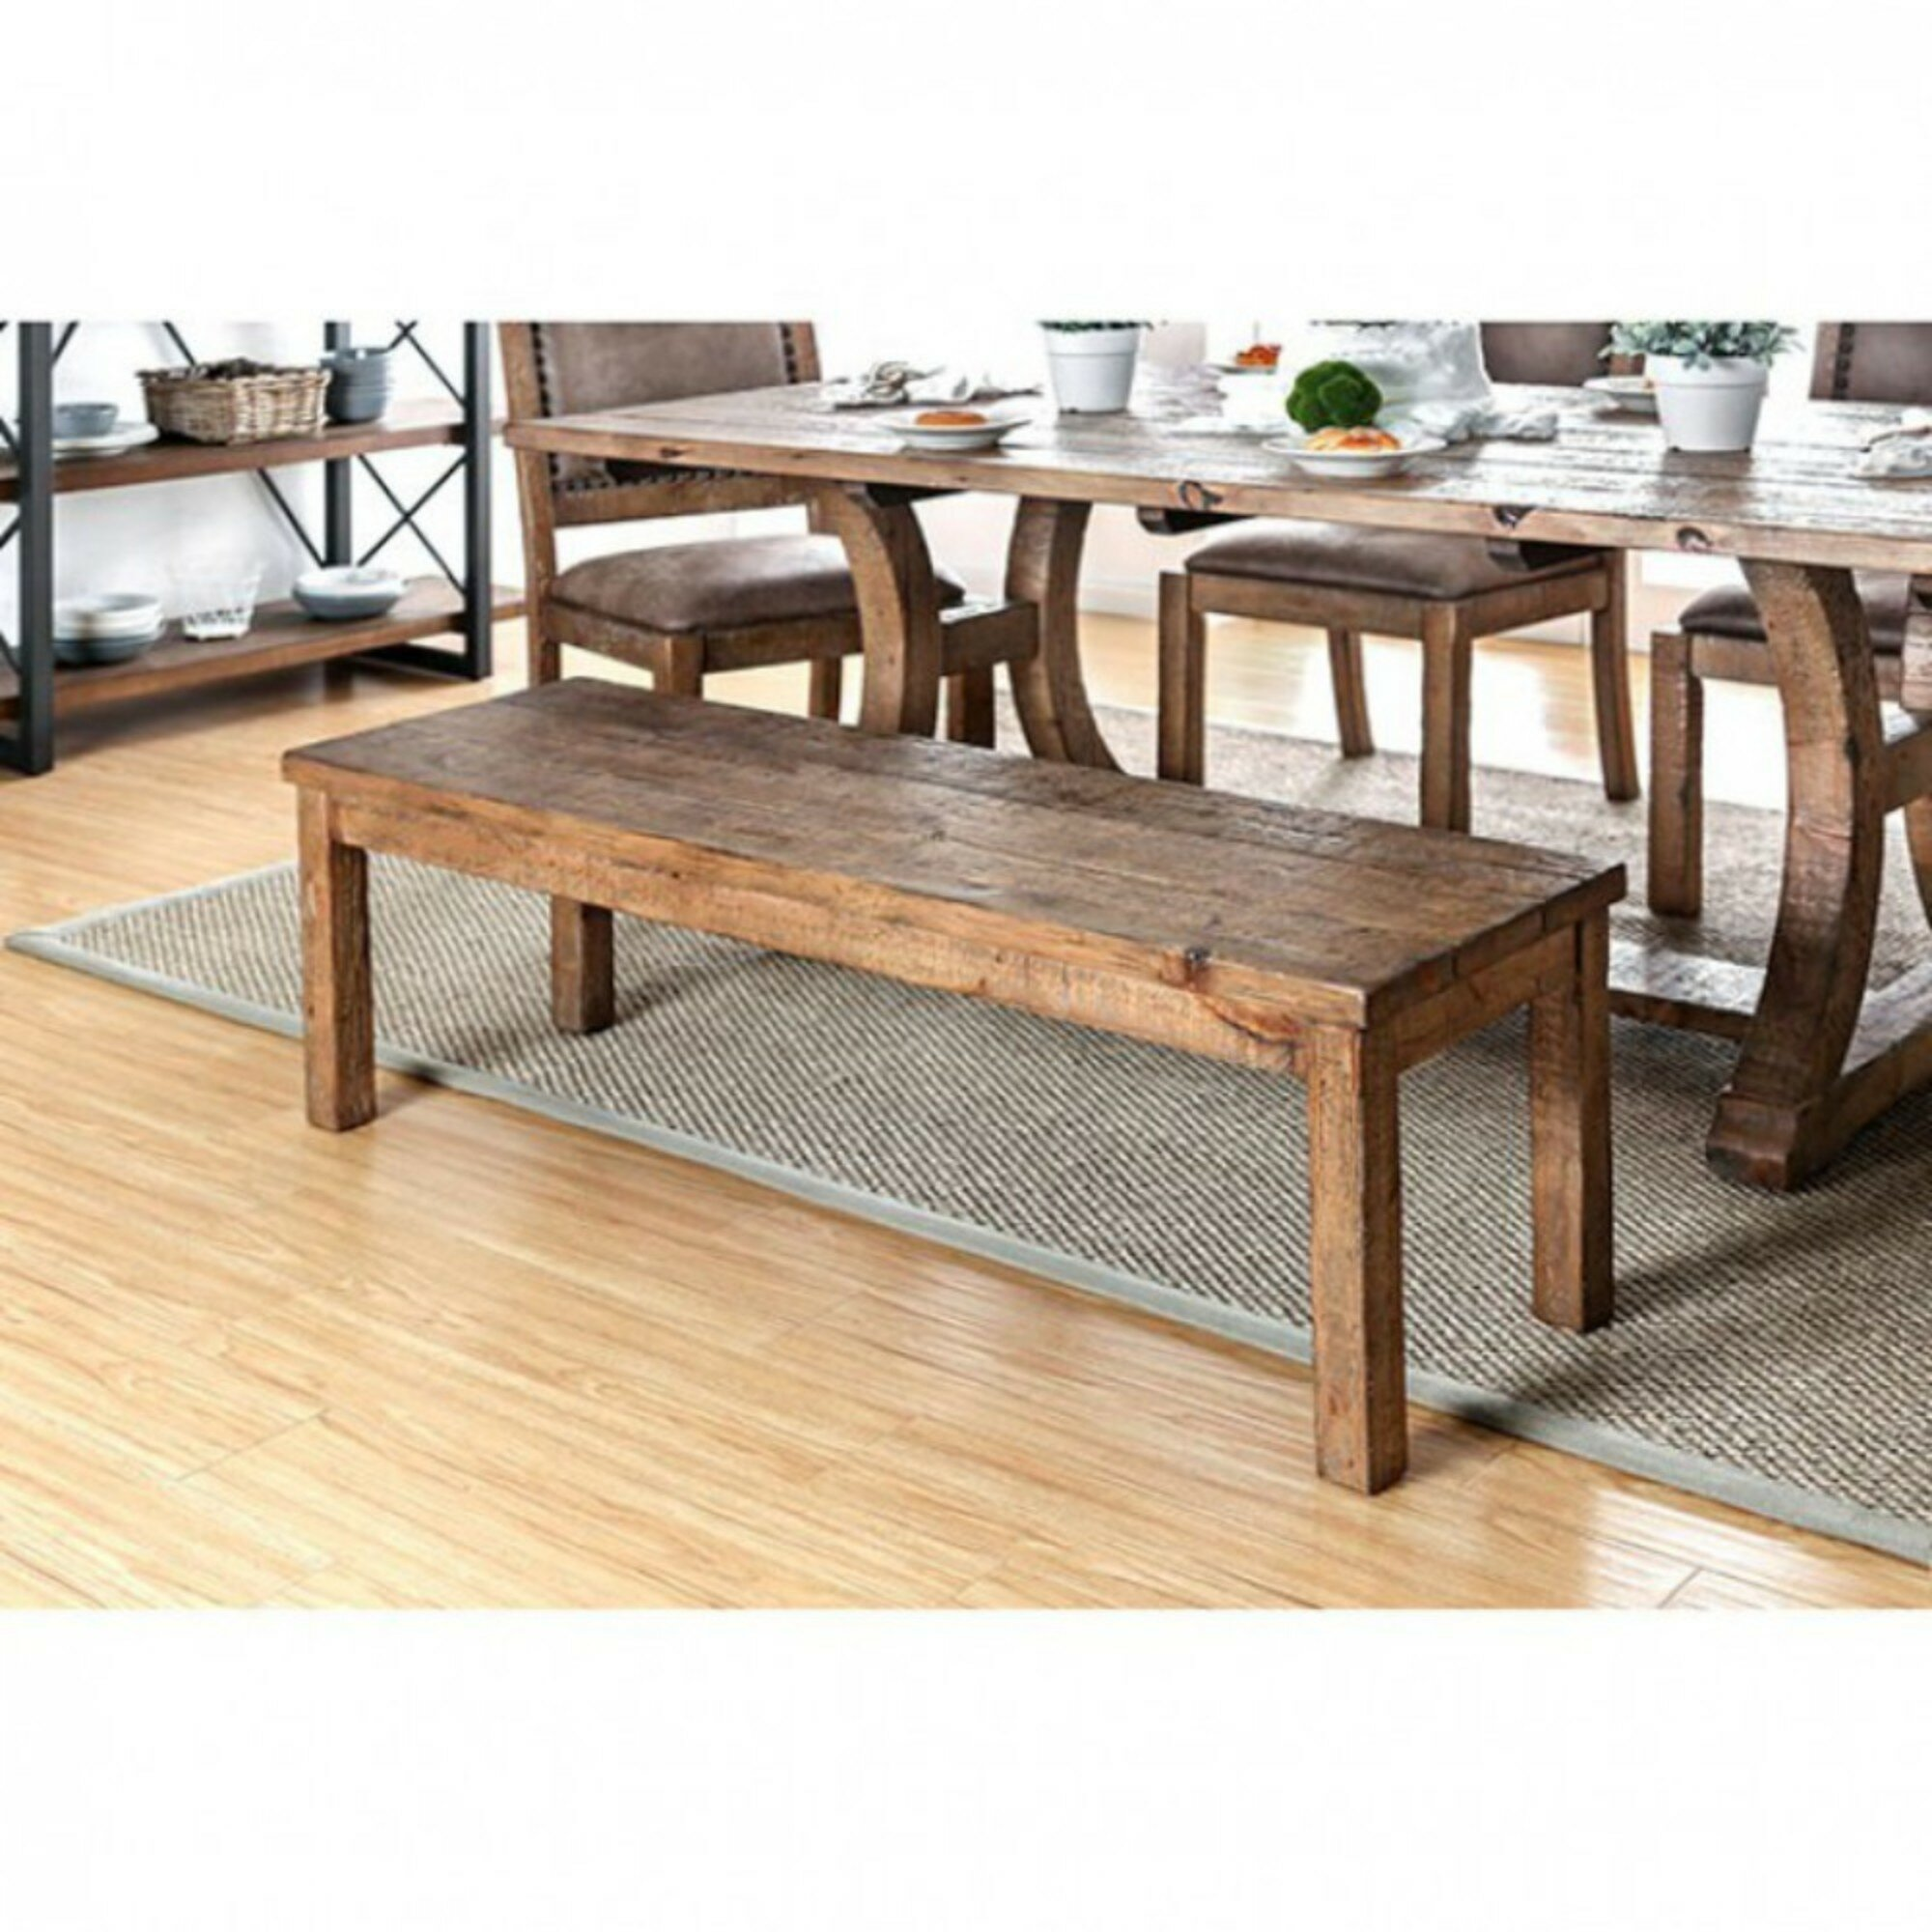 Foundry Select Glenn Old Style Wood Bench | Wayfair